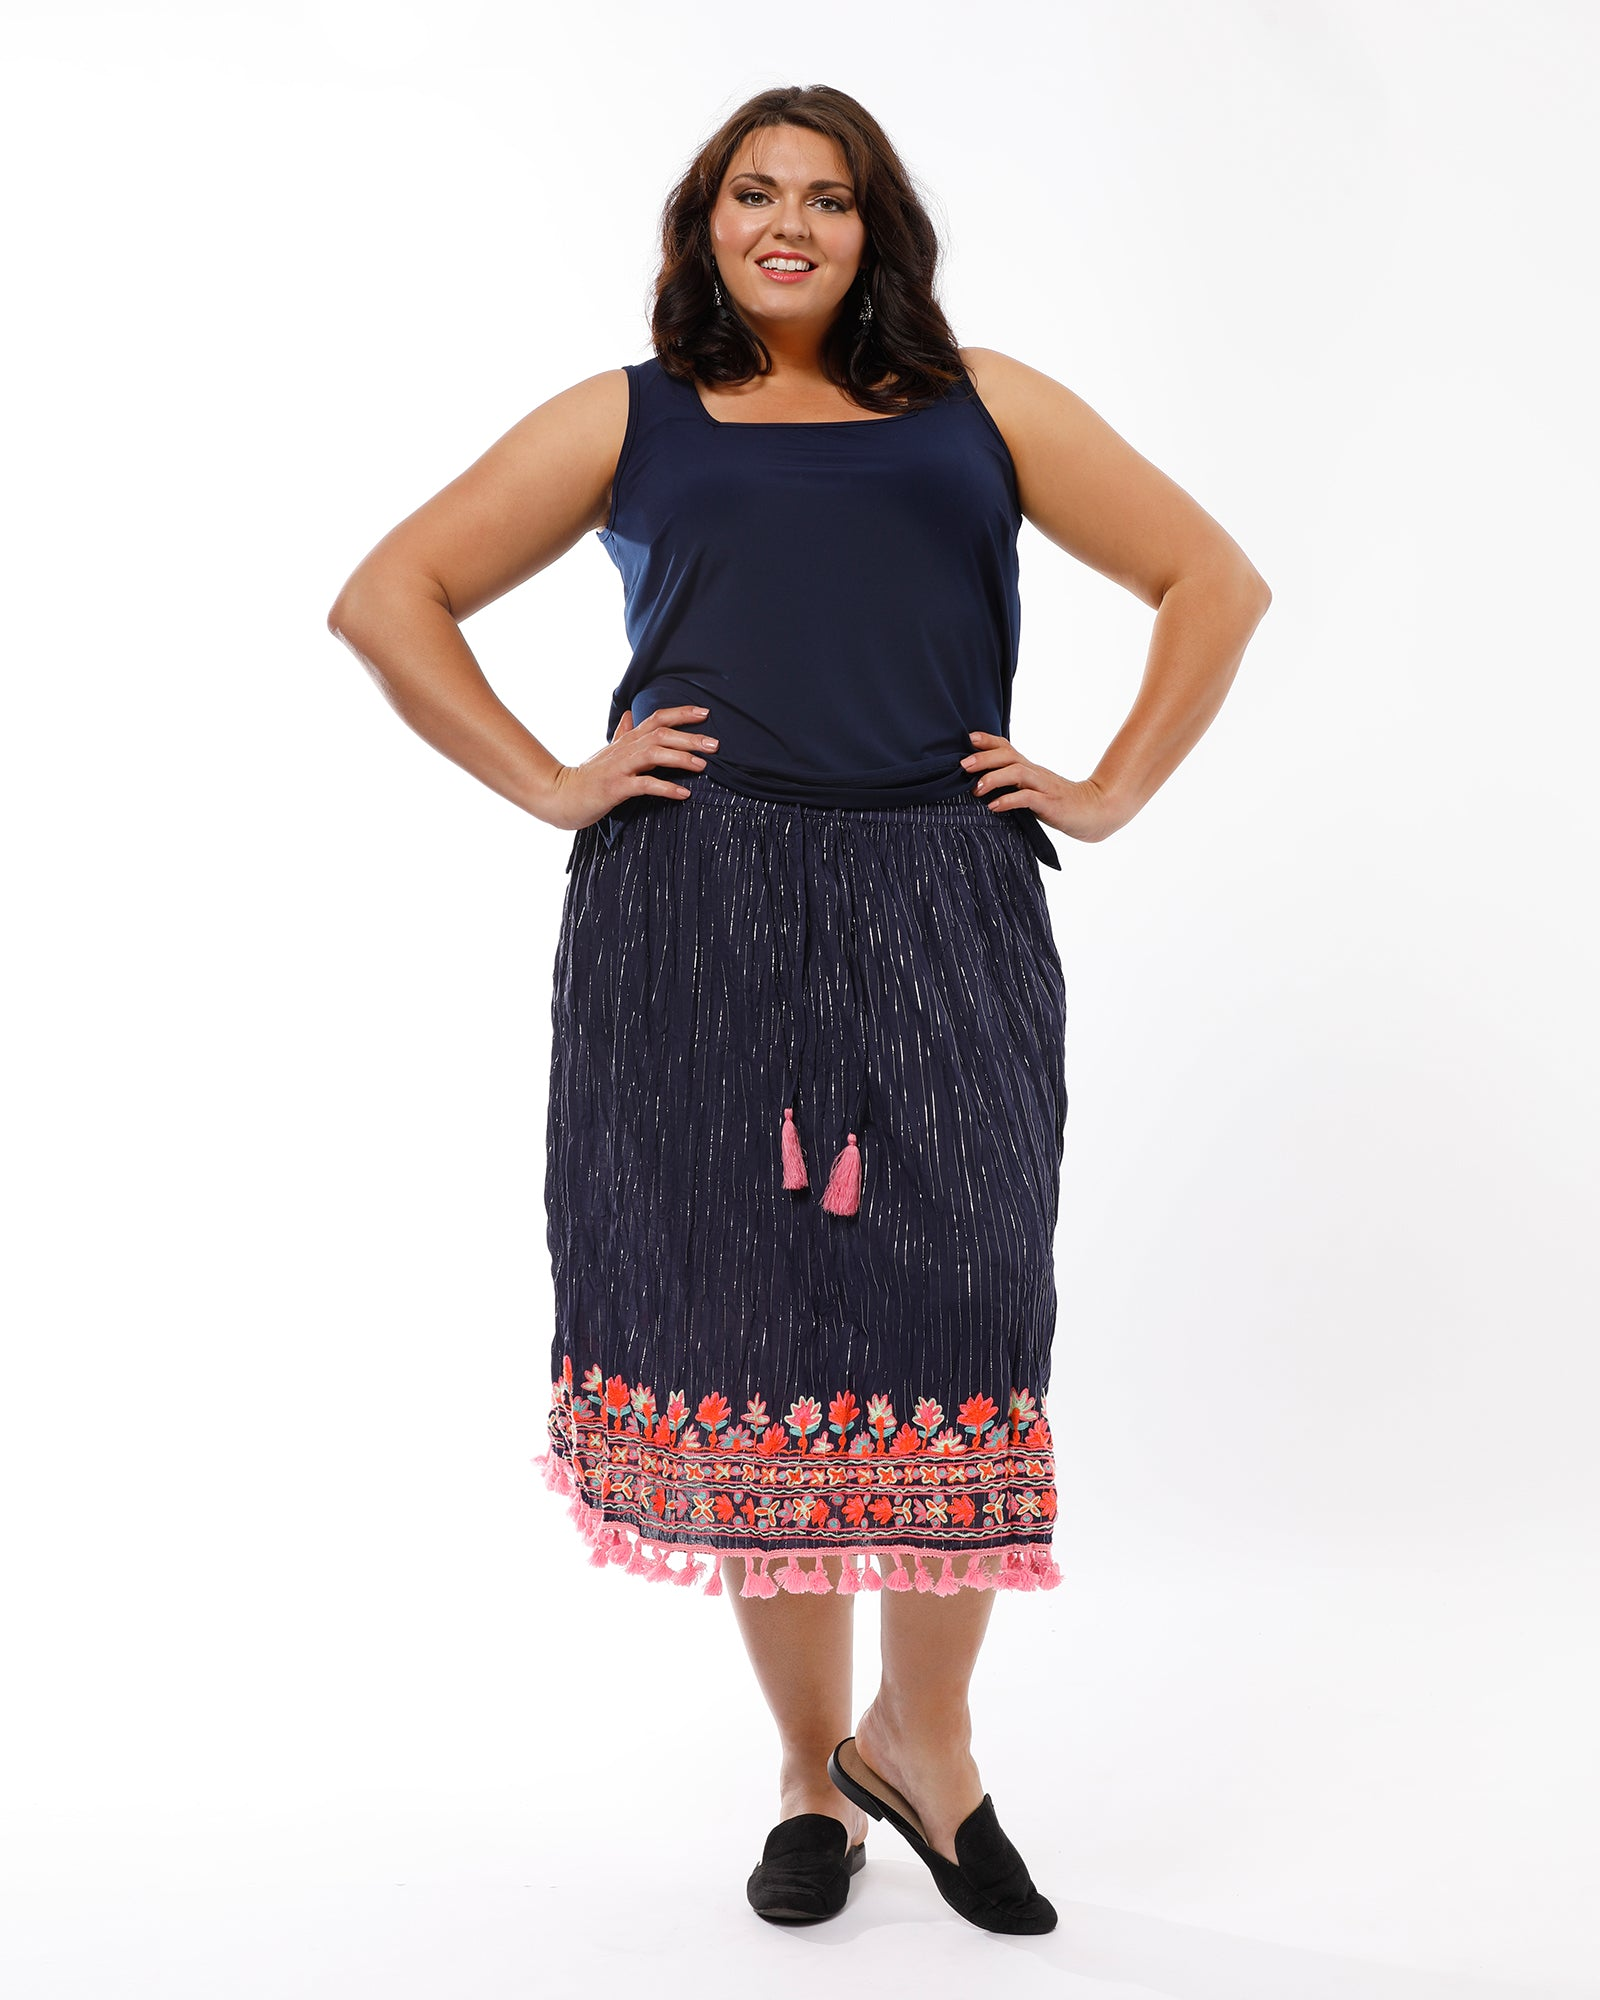 Bipa Skirt - Navy LAST ONES SIZE 16 and 20